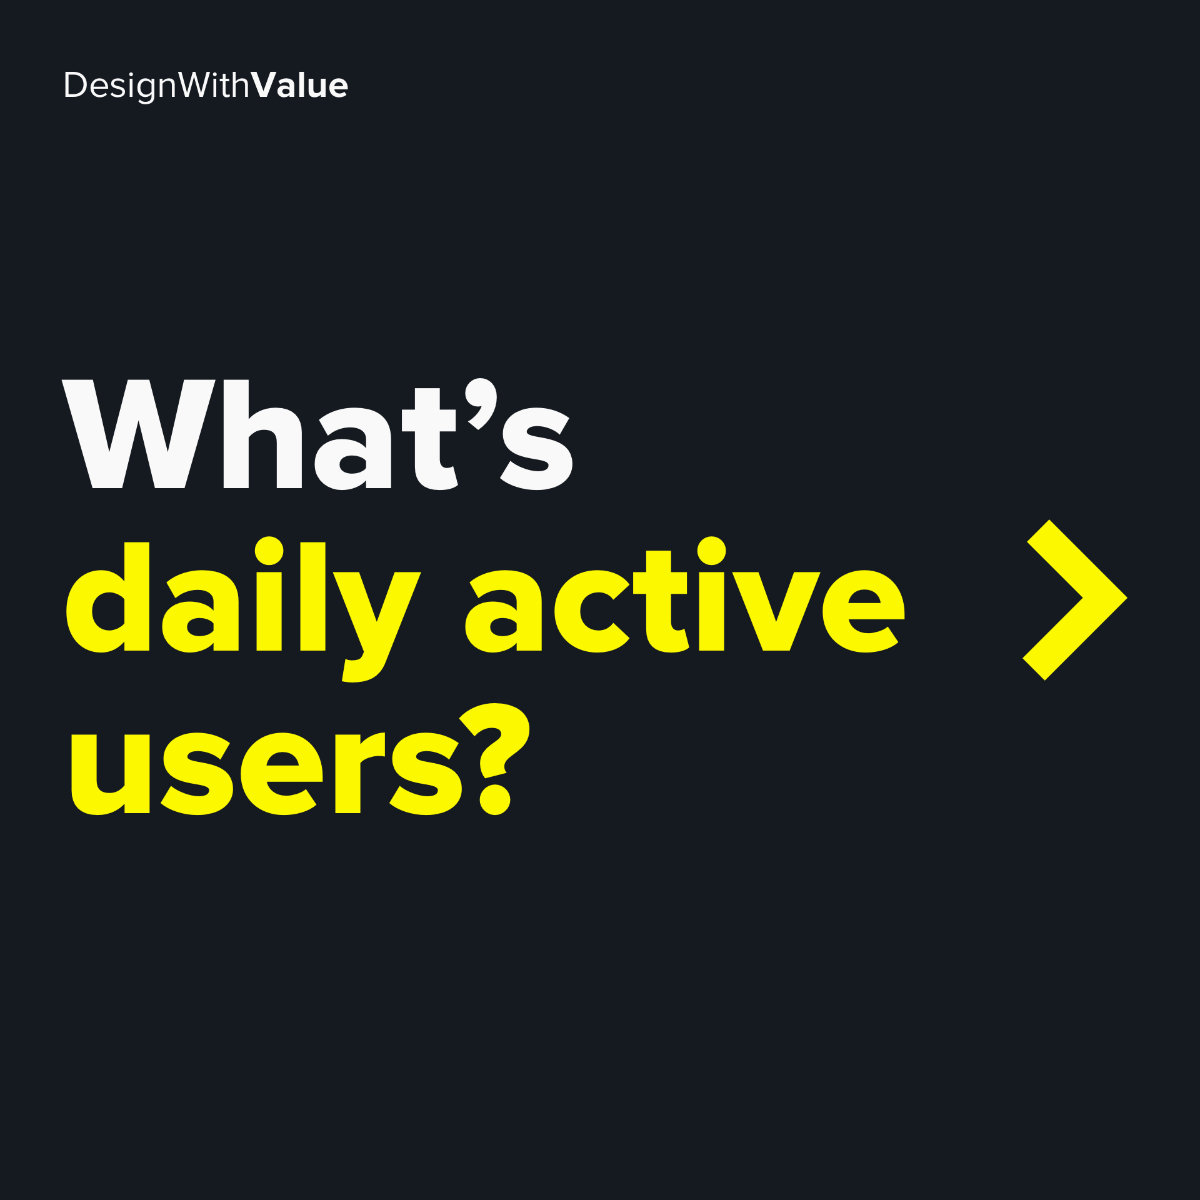 What's daily active users?